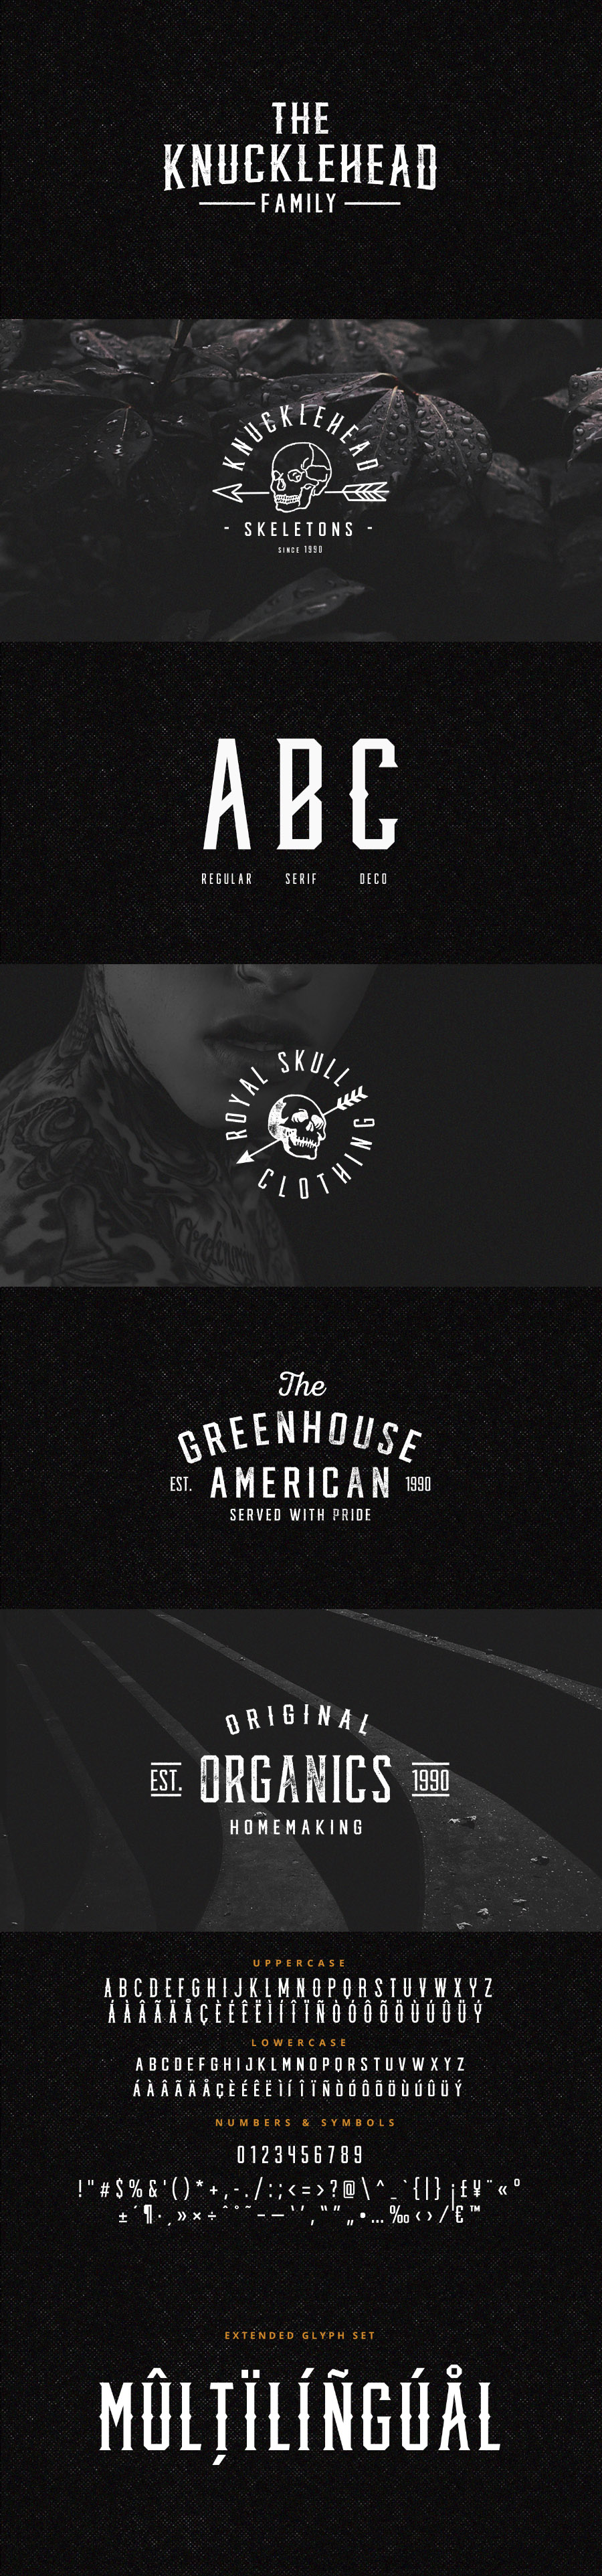 the knucklehead font